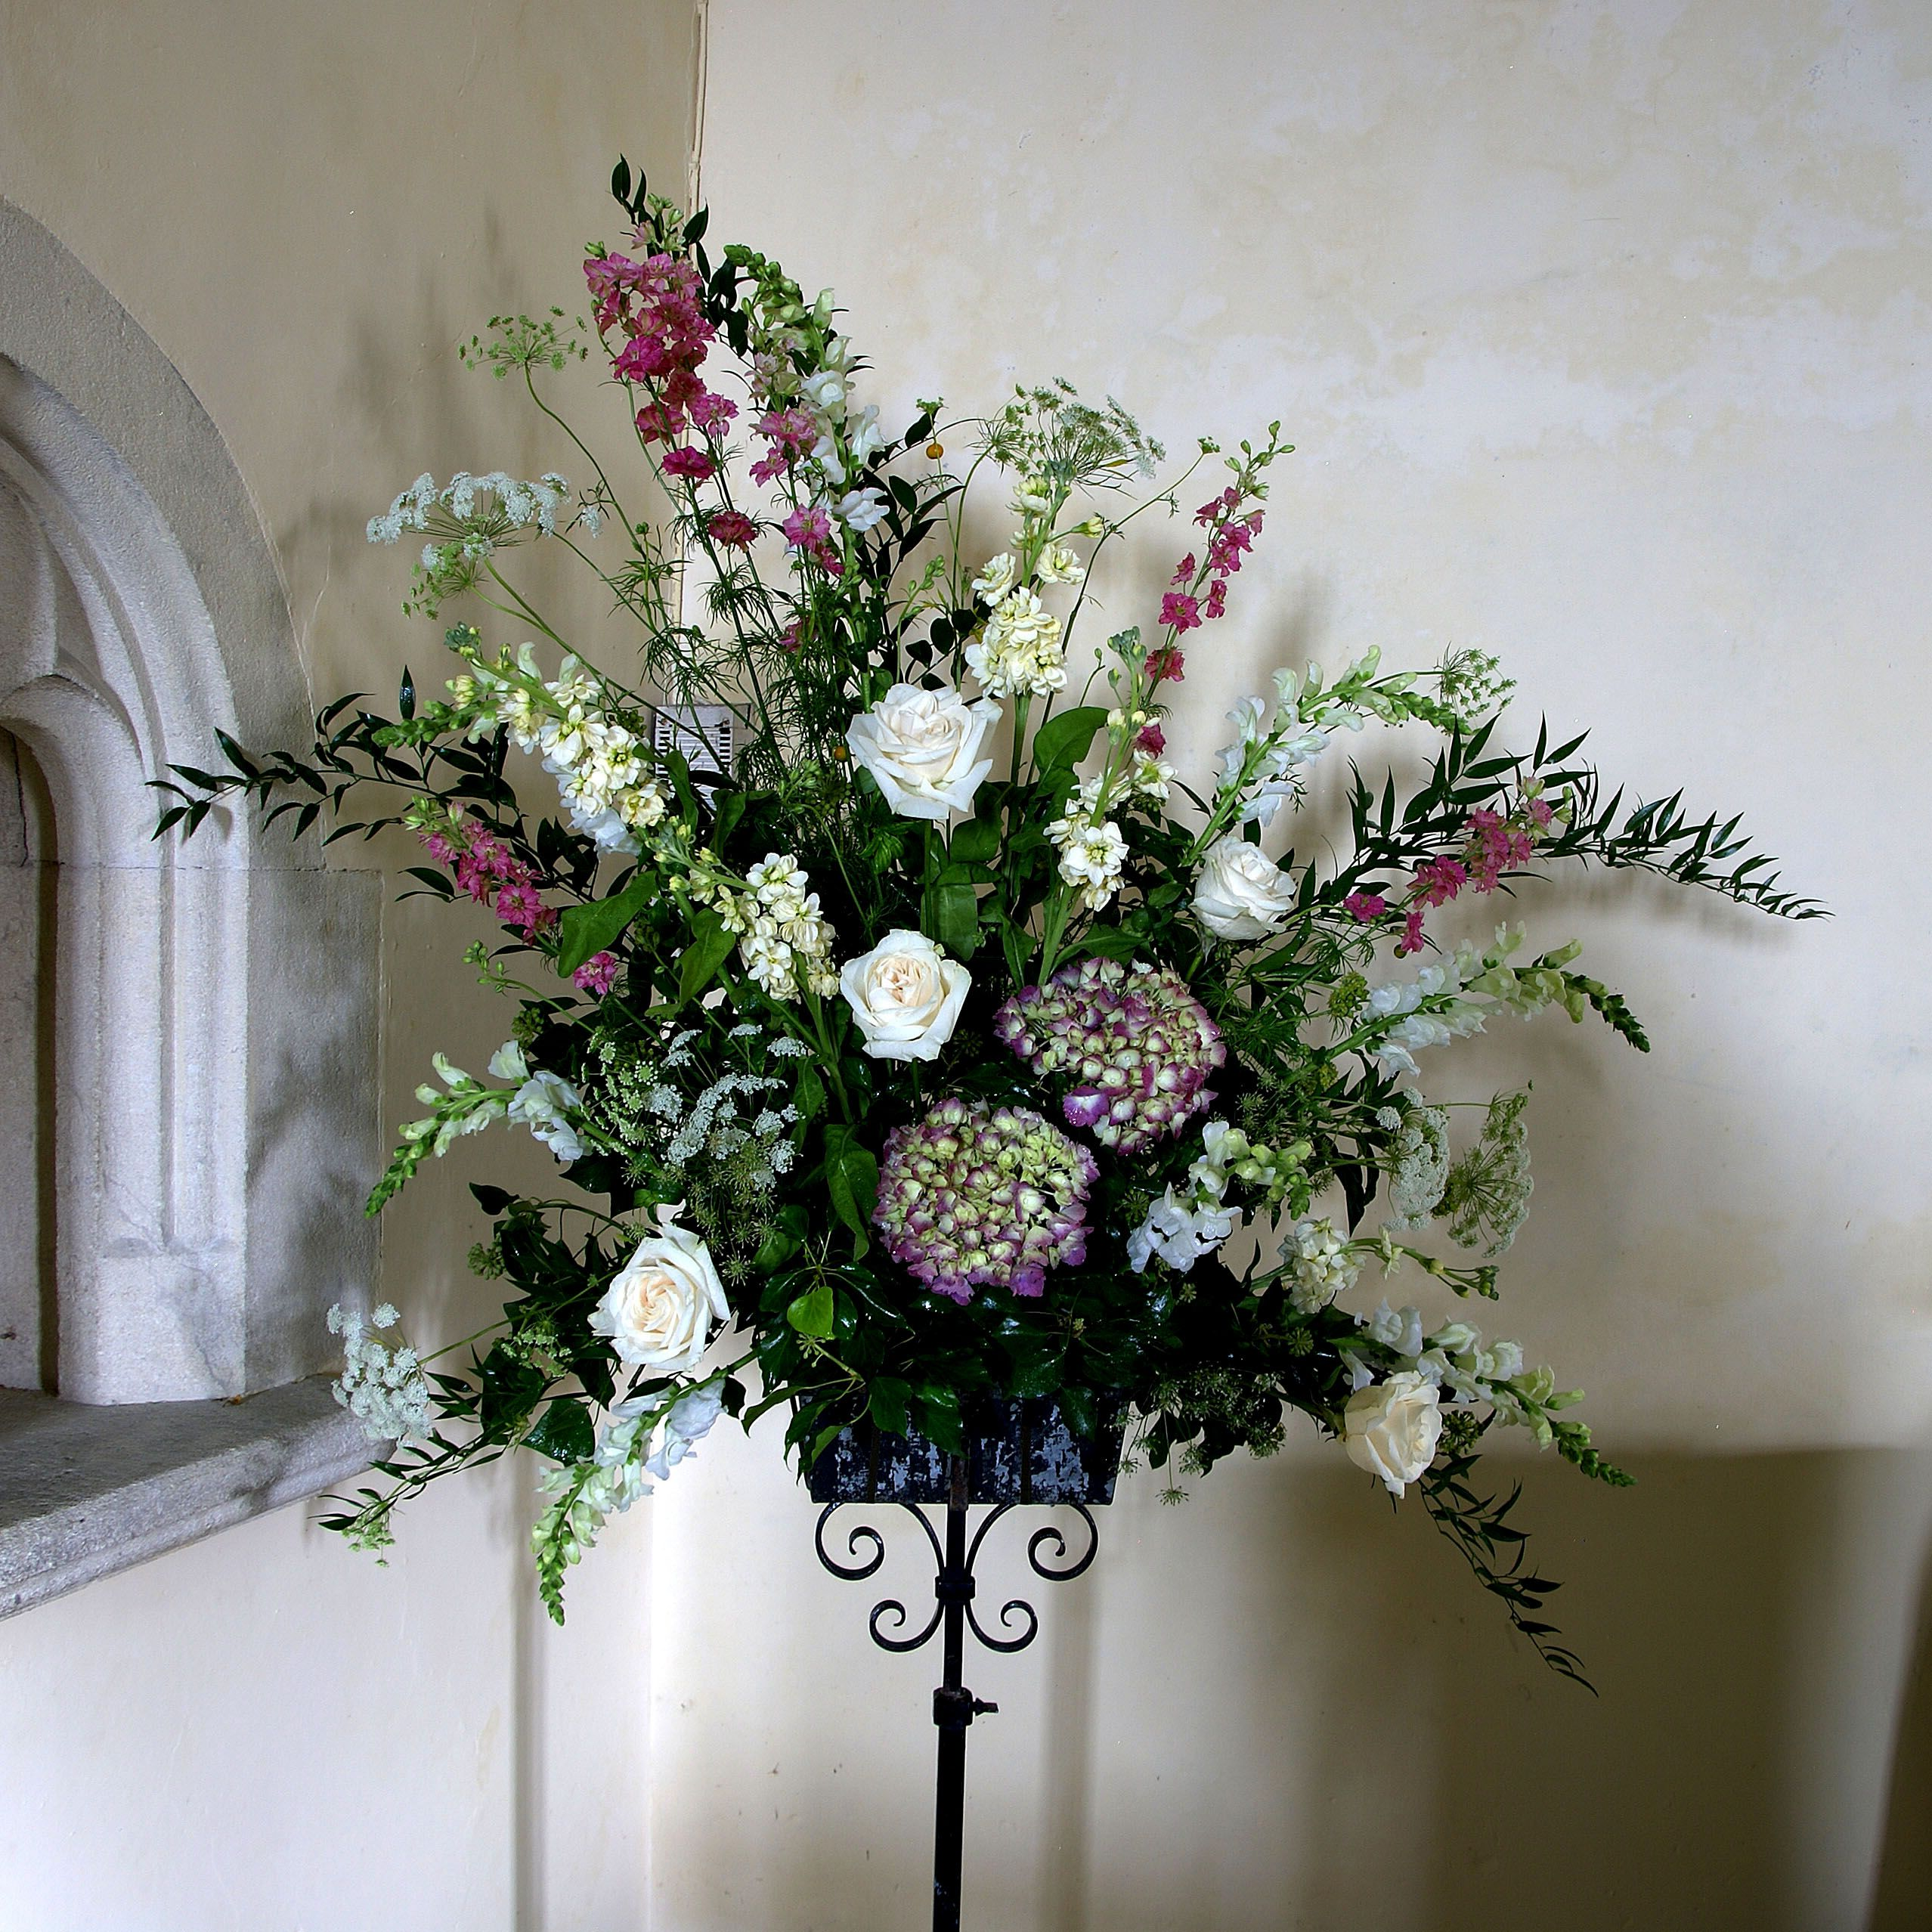 Wedding Flower Arrangements For Church: Church Wedding Flowers. Pedestal Arrangement Of Country